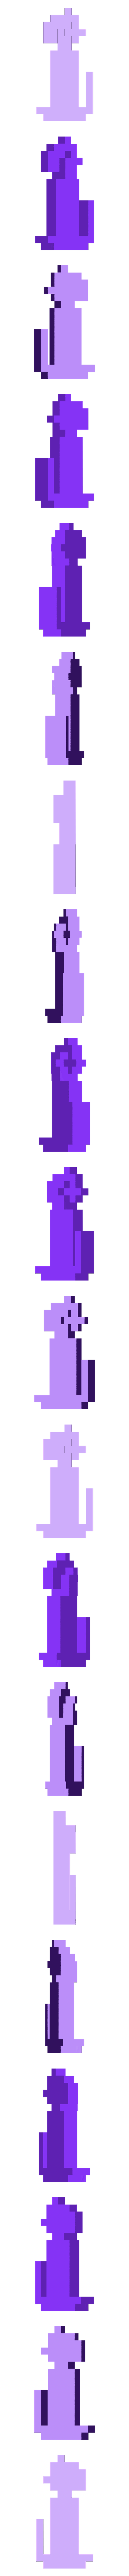 Candle.stl Download free STL file Zelda 8 bits Inventory menu with items • Object to 3D print, conceptify